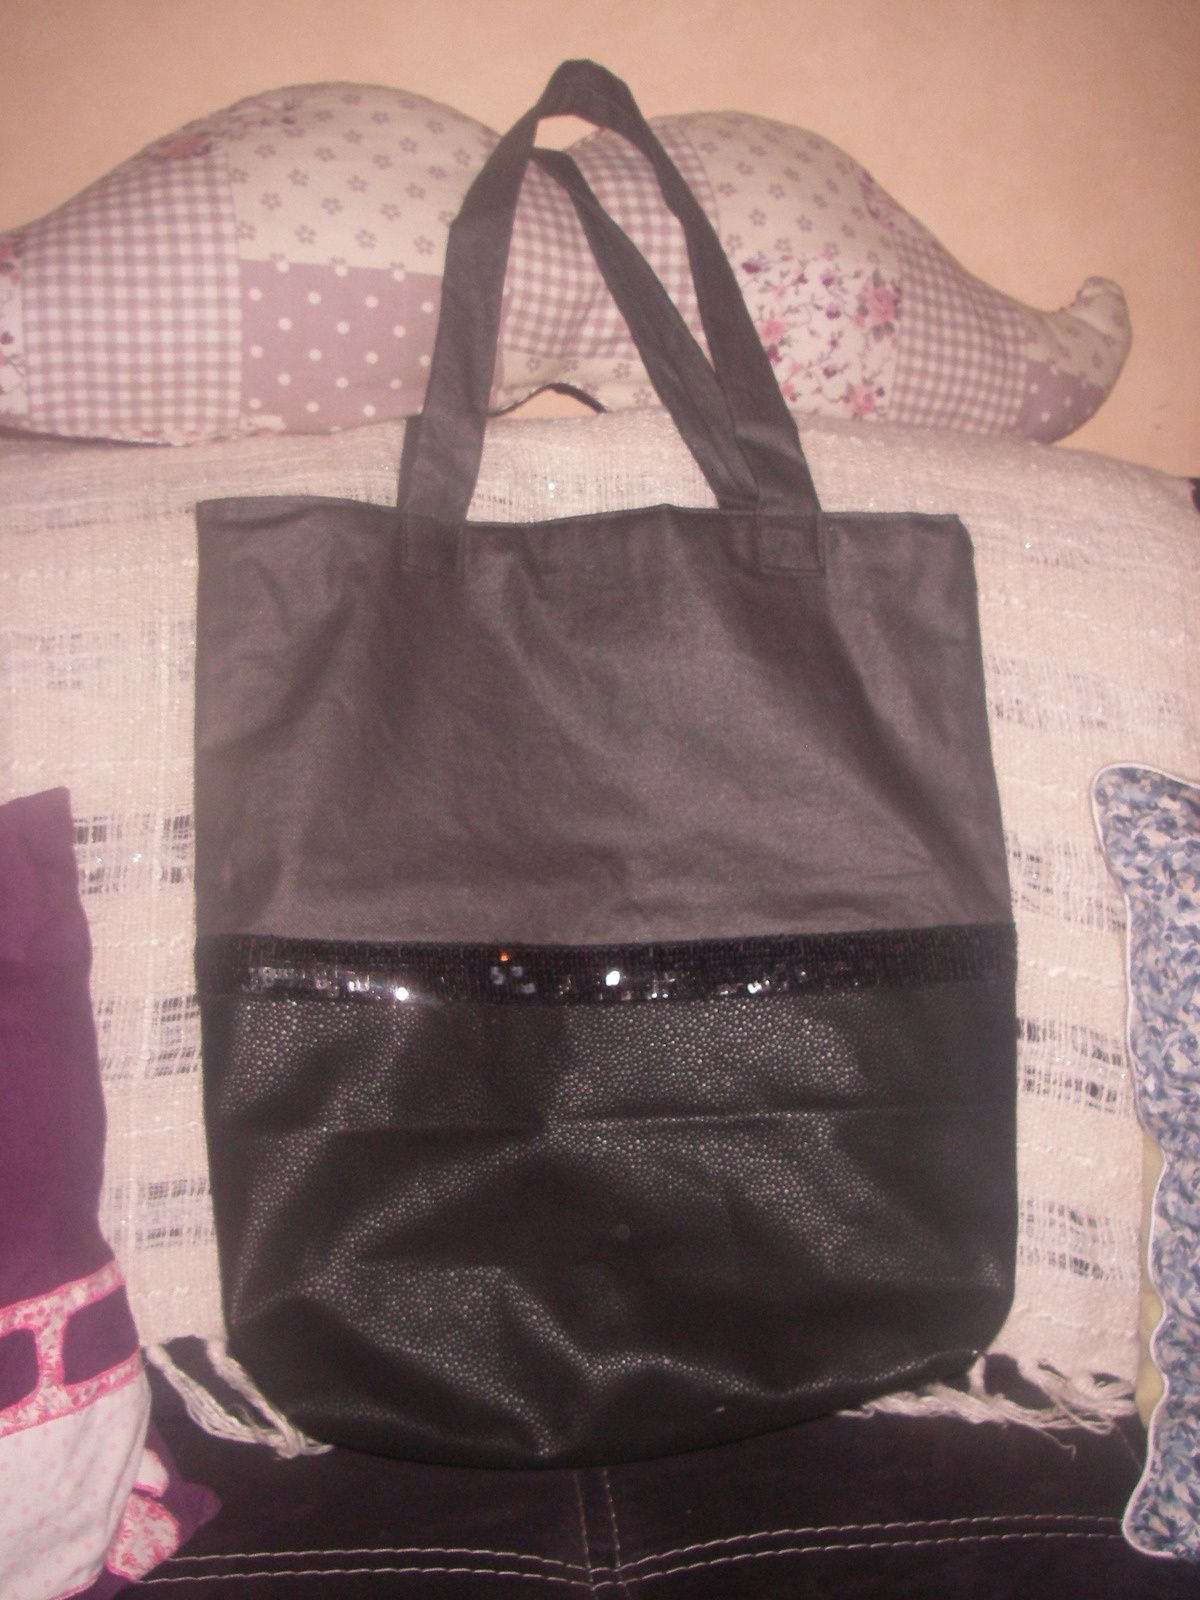 un tote bag a paillettes le blog de les petites cr ations de miss babylou. Black Bedroom Furniture Sets. Home Design Ideas